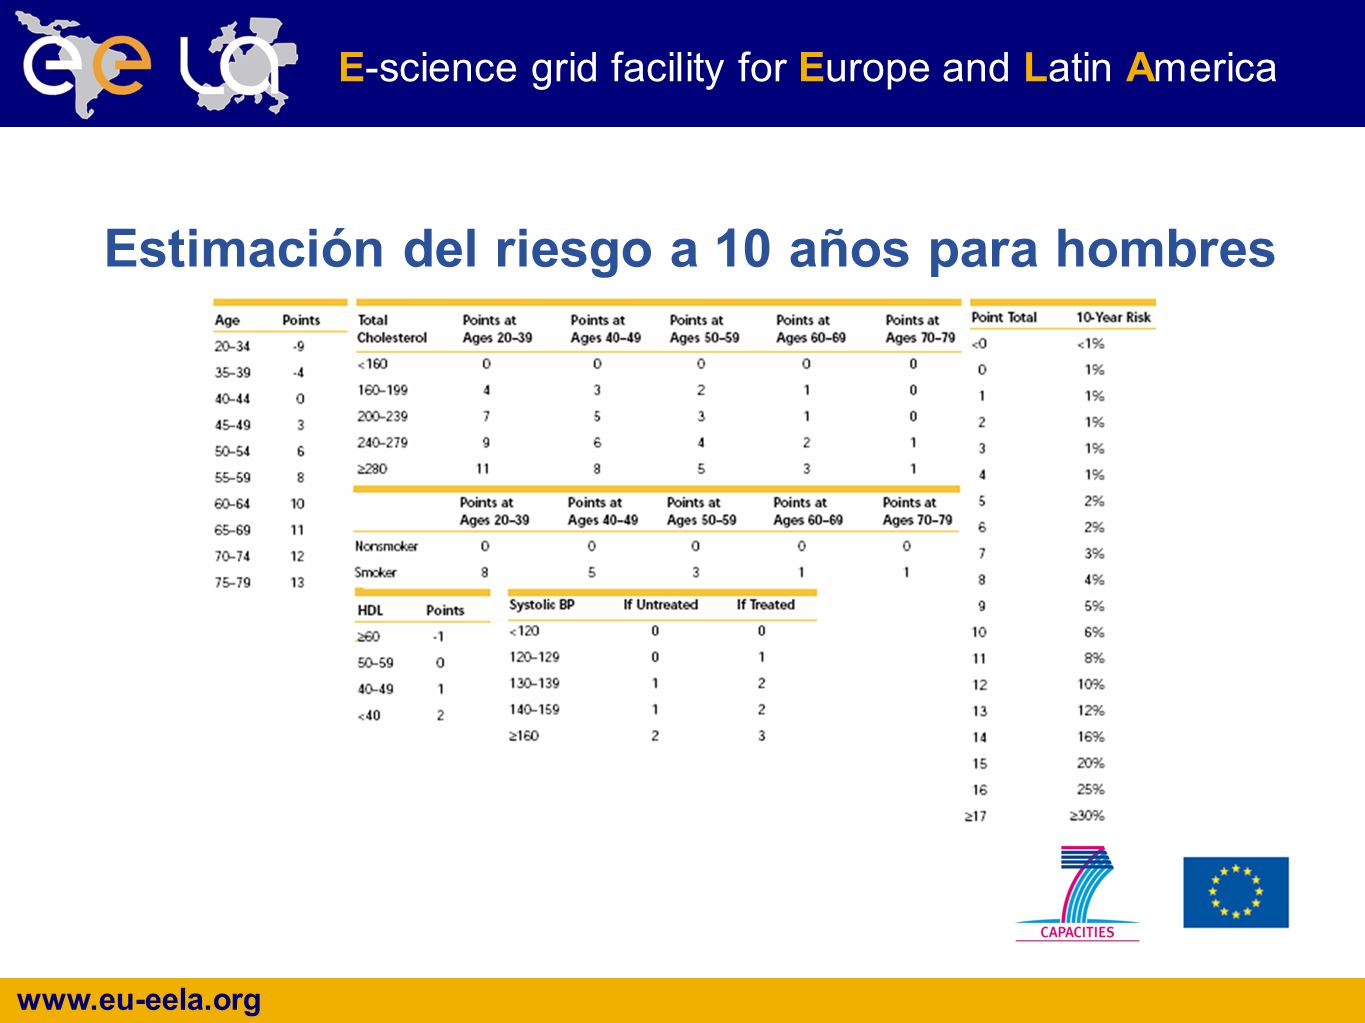 www.eu-eela.org E-science grid facility for Europe and Latin America Estimación del riesgo a 10 años para hombres